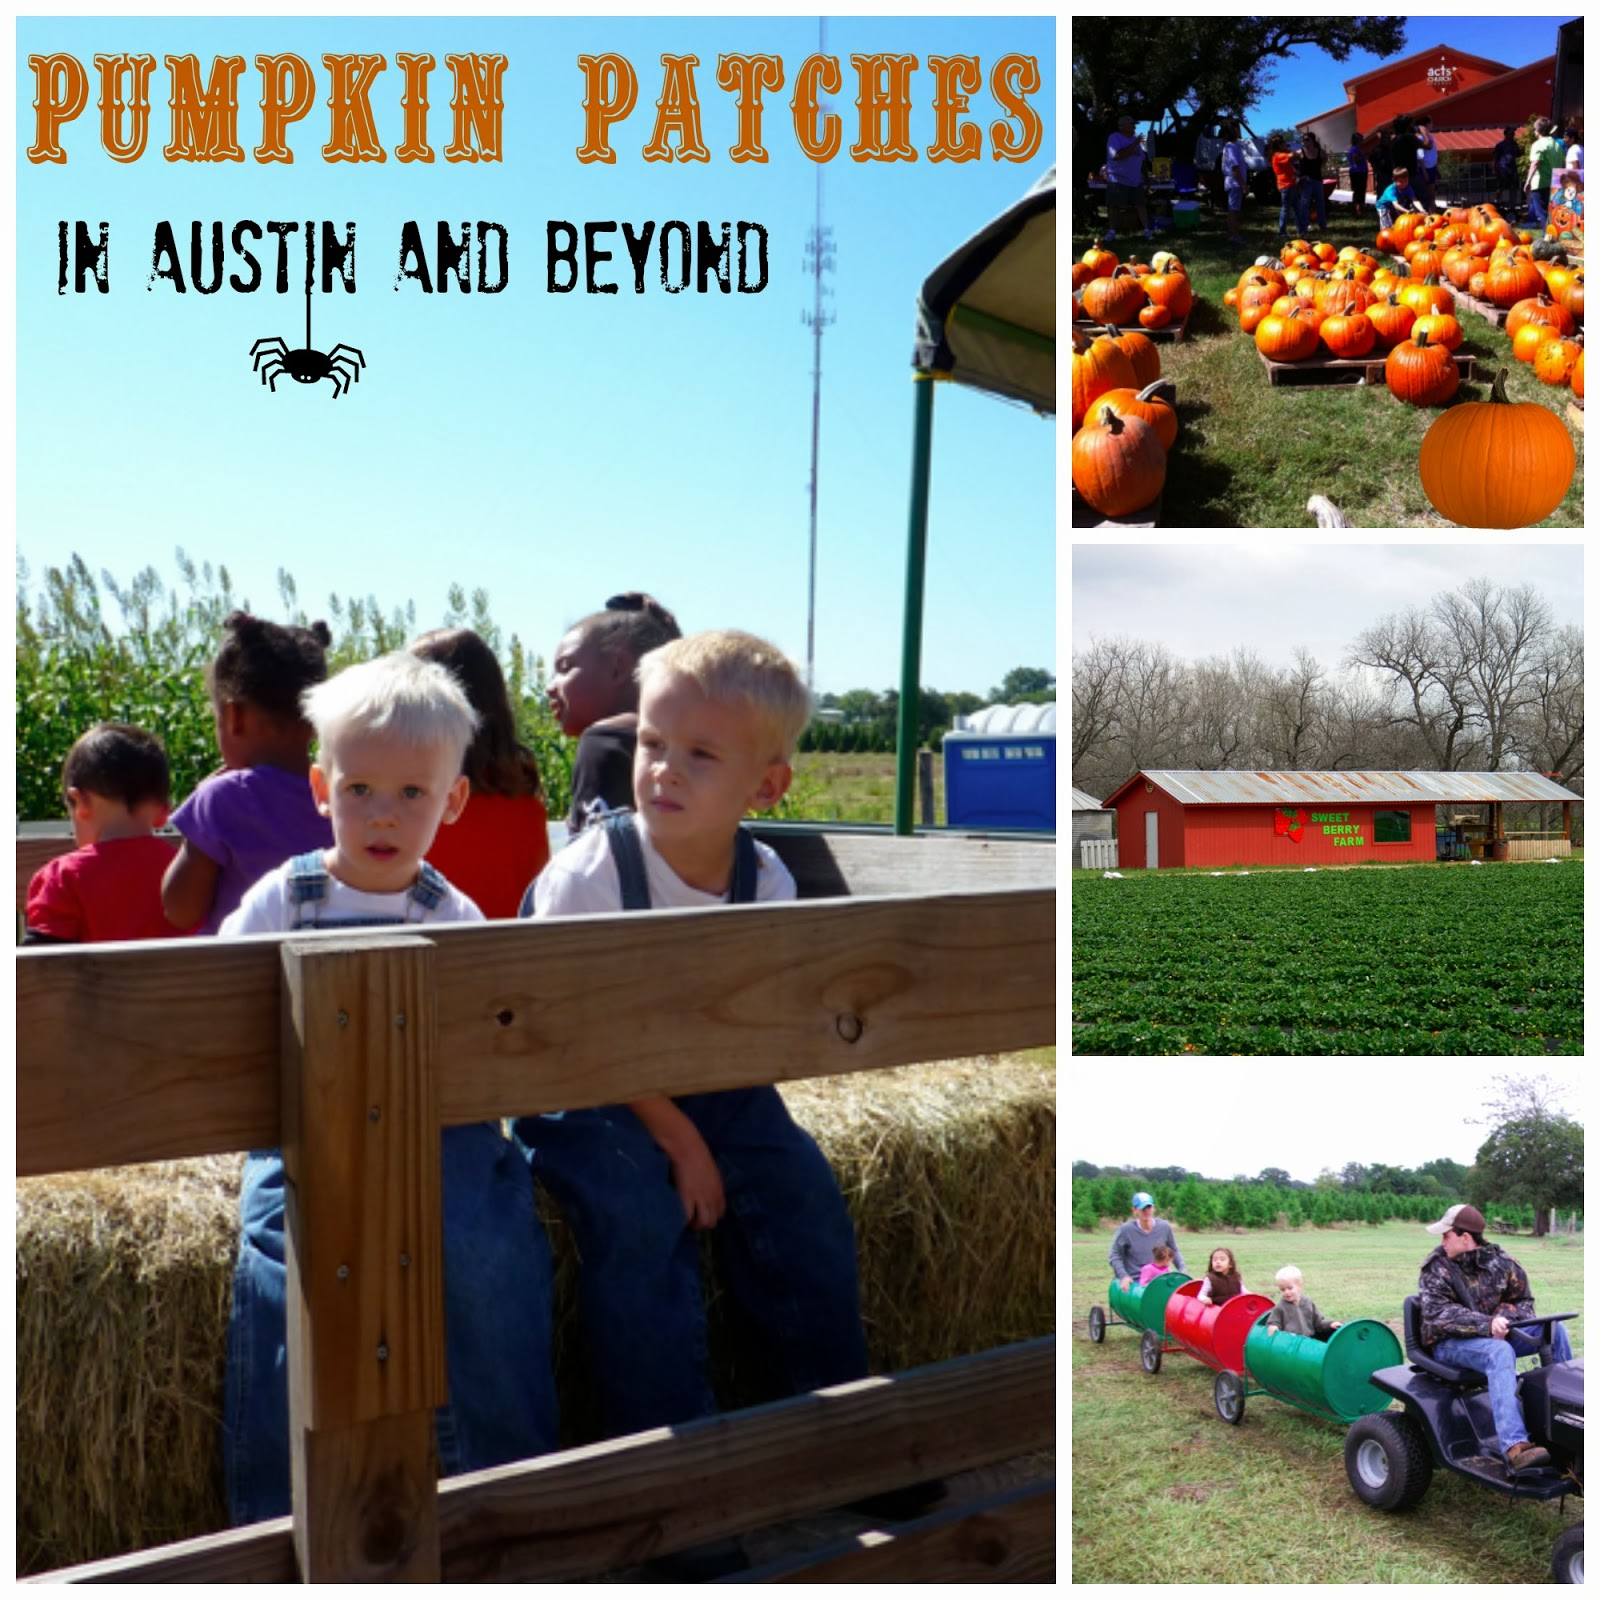 Pumpkin Patches in Austin